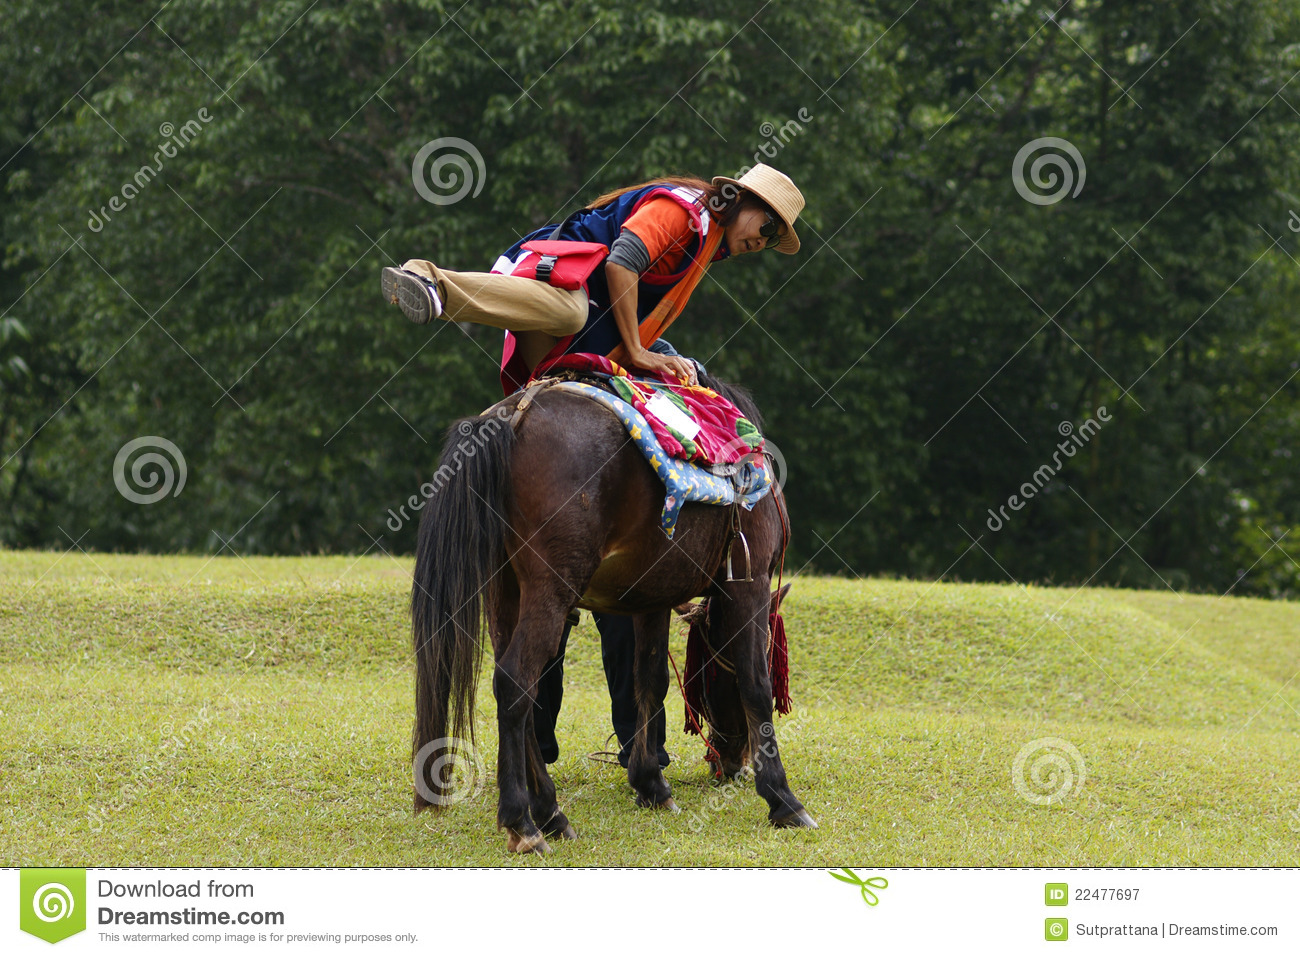 Asian woman mounting horse on grass with leafy trees in background.